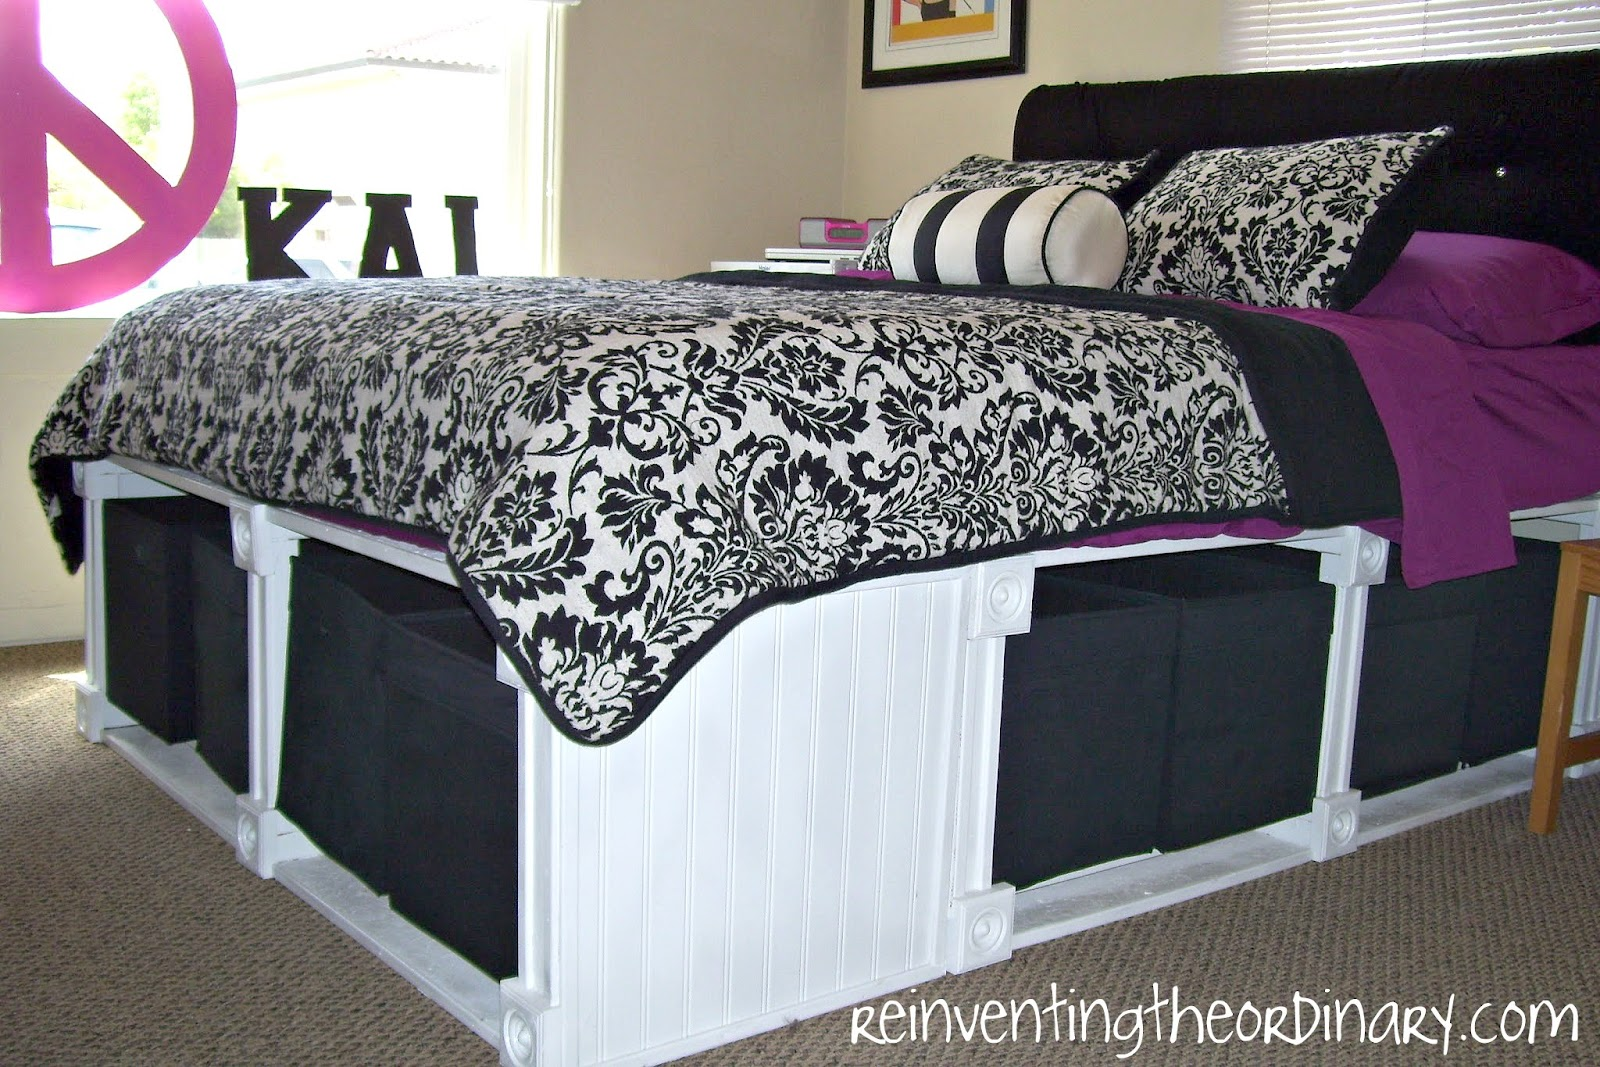 Reinventing the Ordinary: Pottery Barn Knockoff Bed